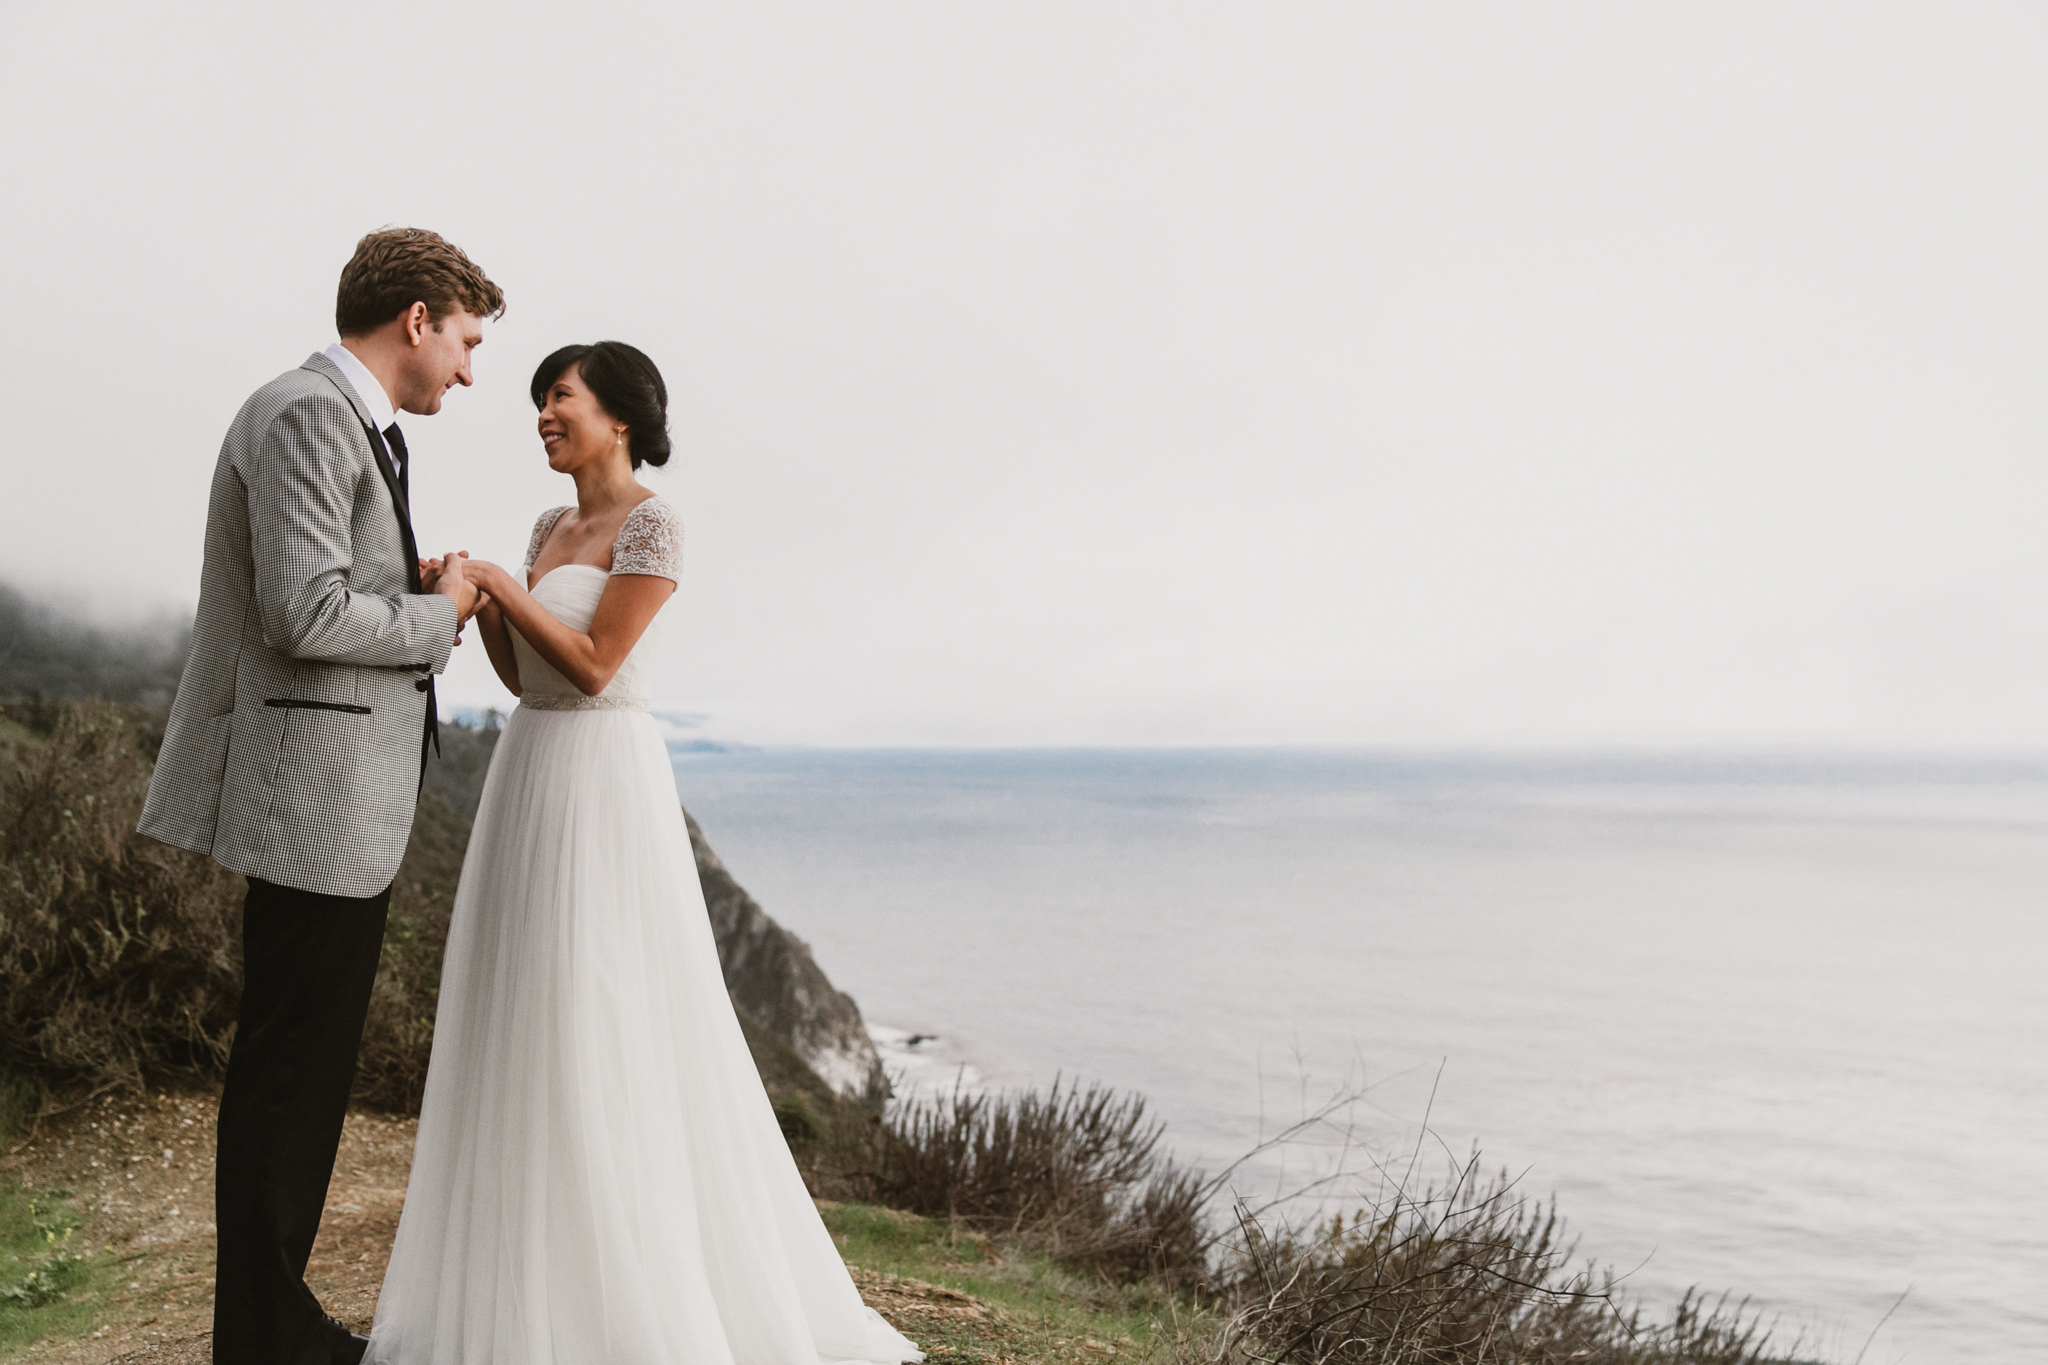 BIG SUR BAKERY WEDDING -10129